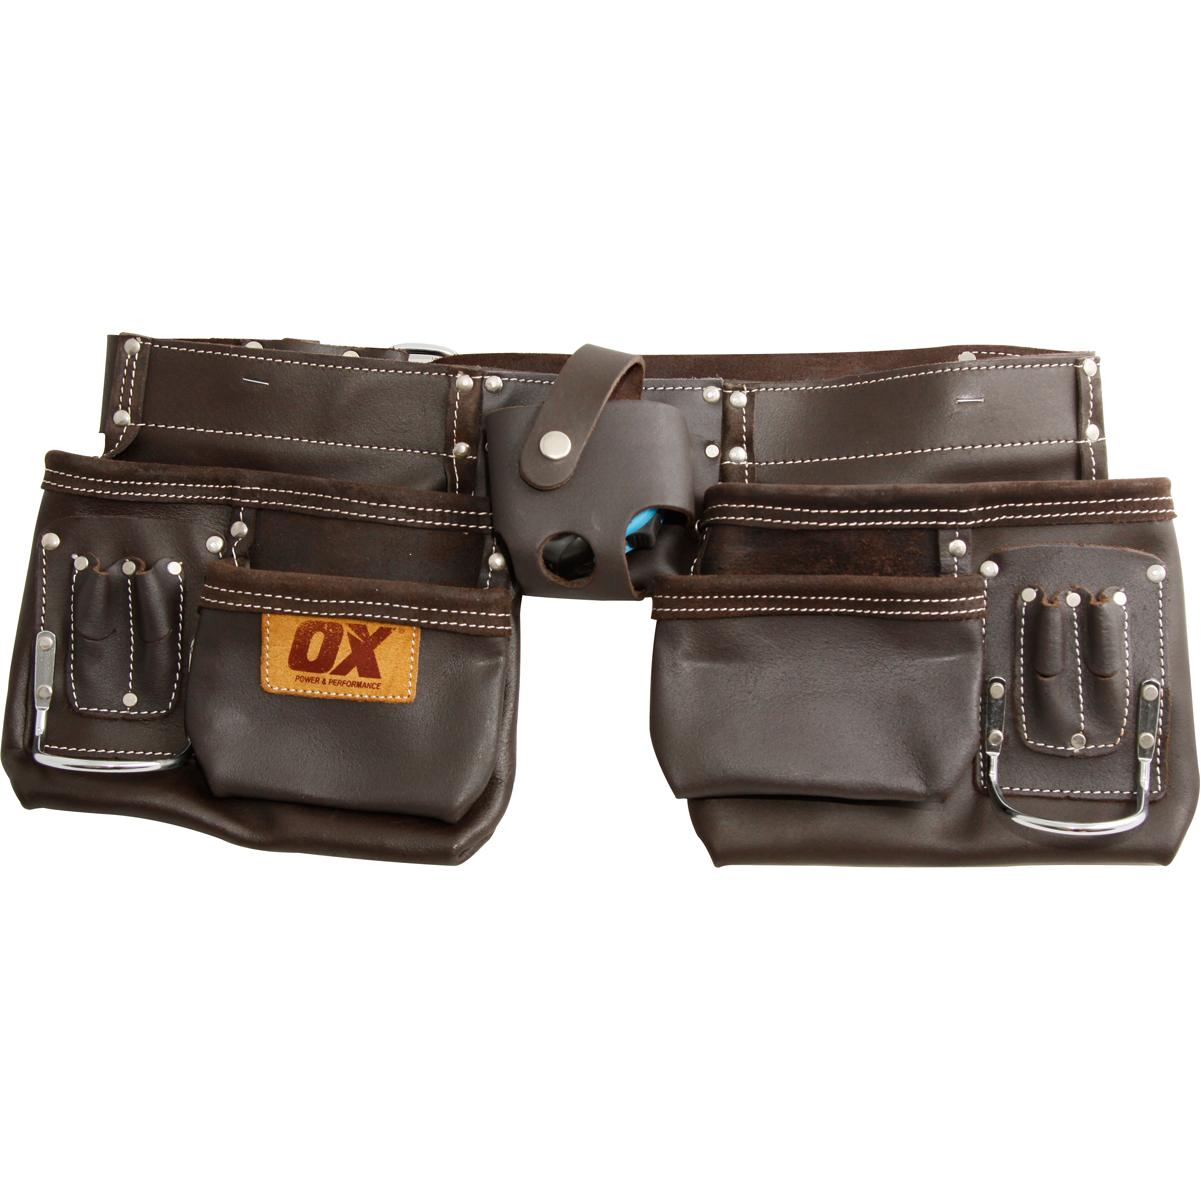 OX Prof Oil Tanned Leather Tool Pouch 40